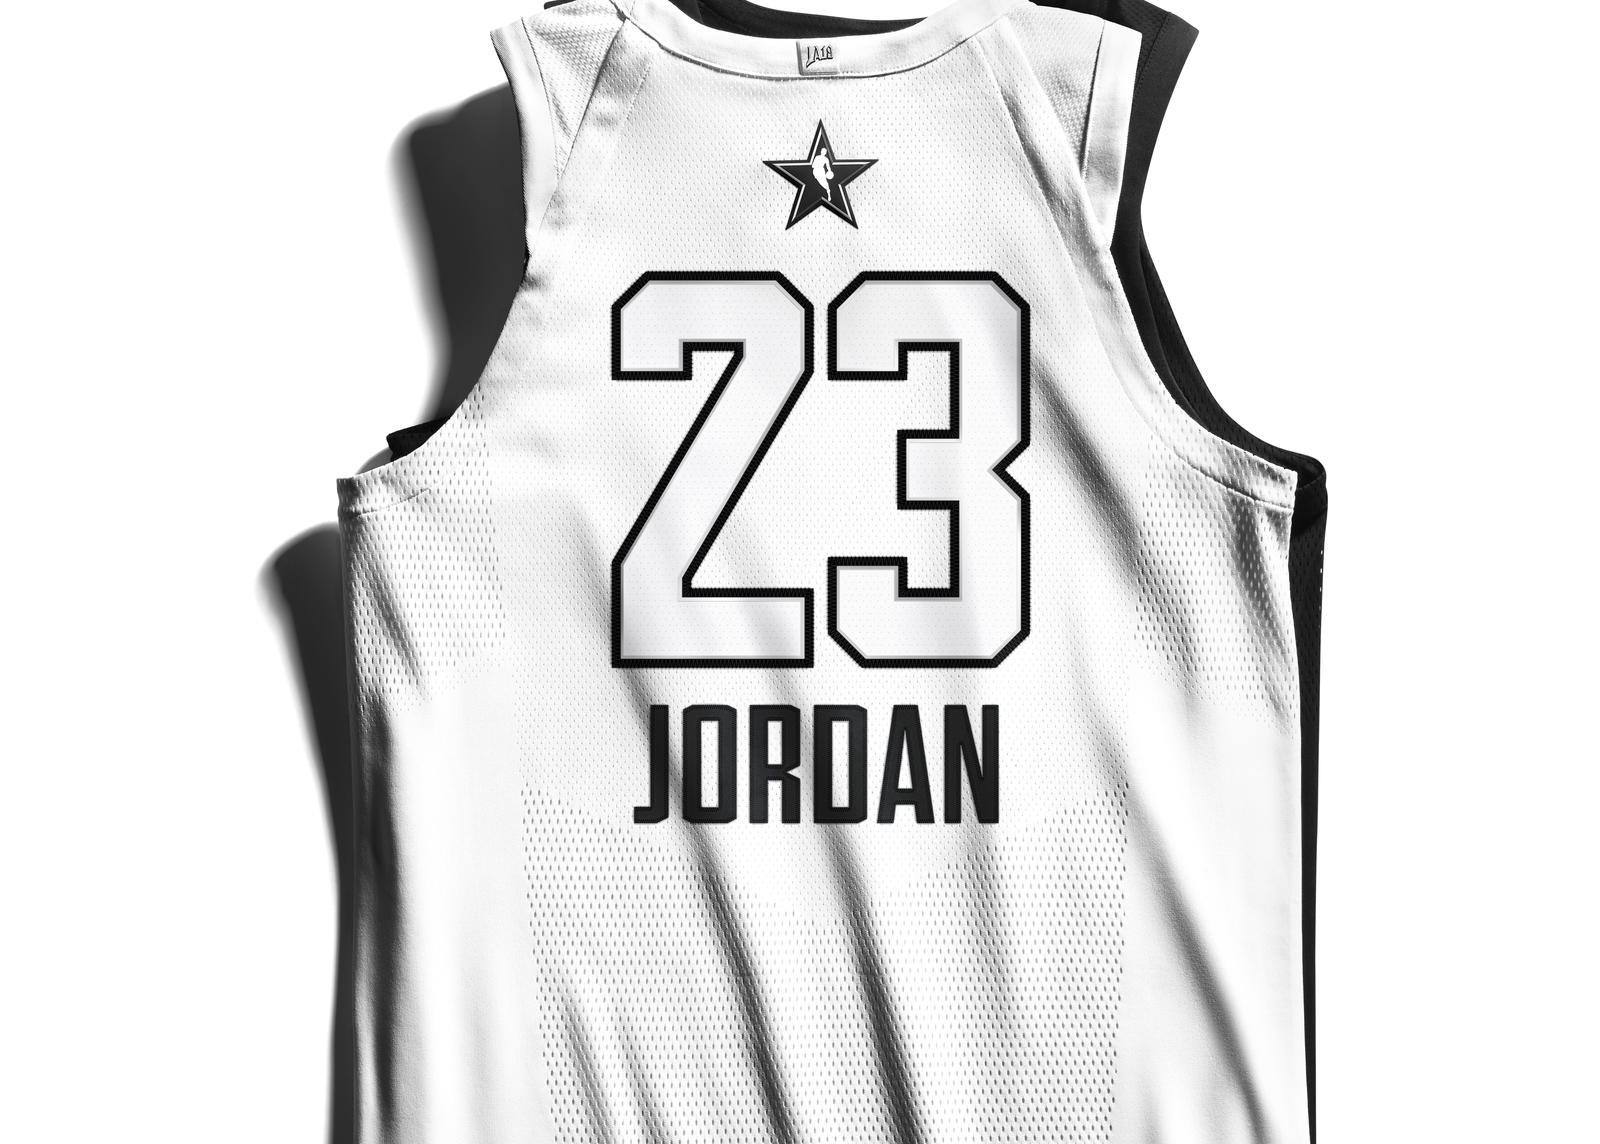 Introducing the First-Ever Jordan Brand NBA All-Star Edition Uniforms 21